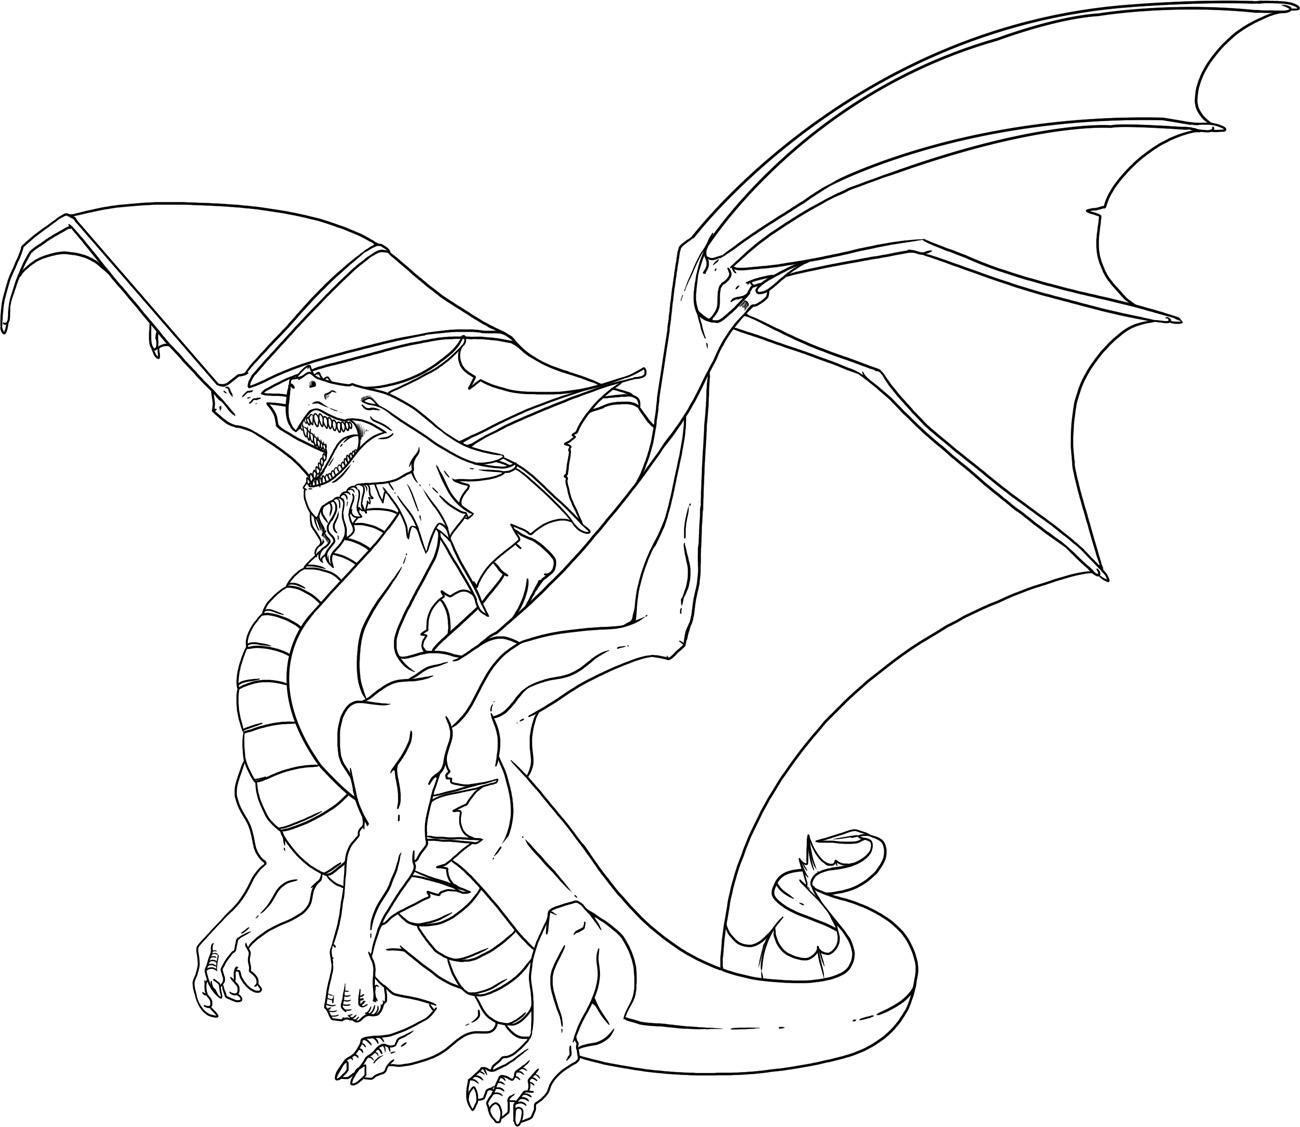 printable dragon coloring pages - Cool Coloring Sheets To Print Out